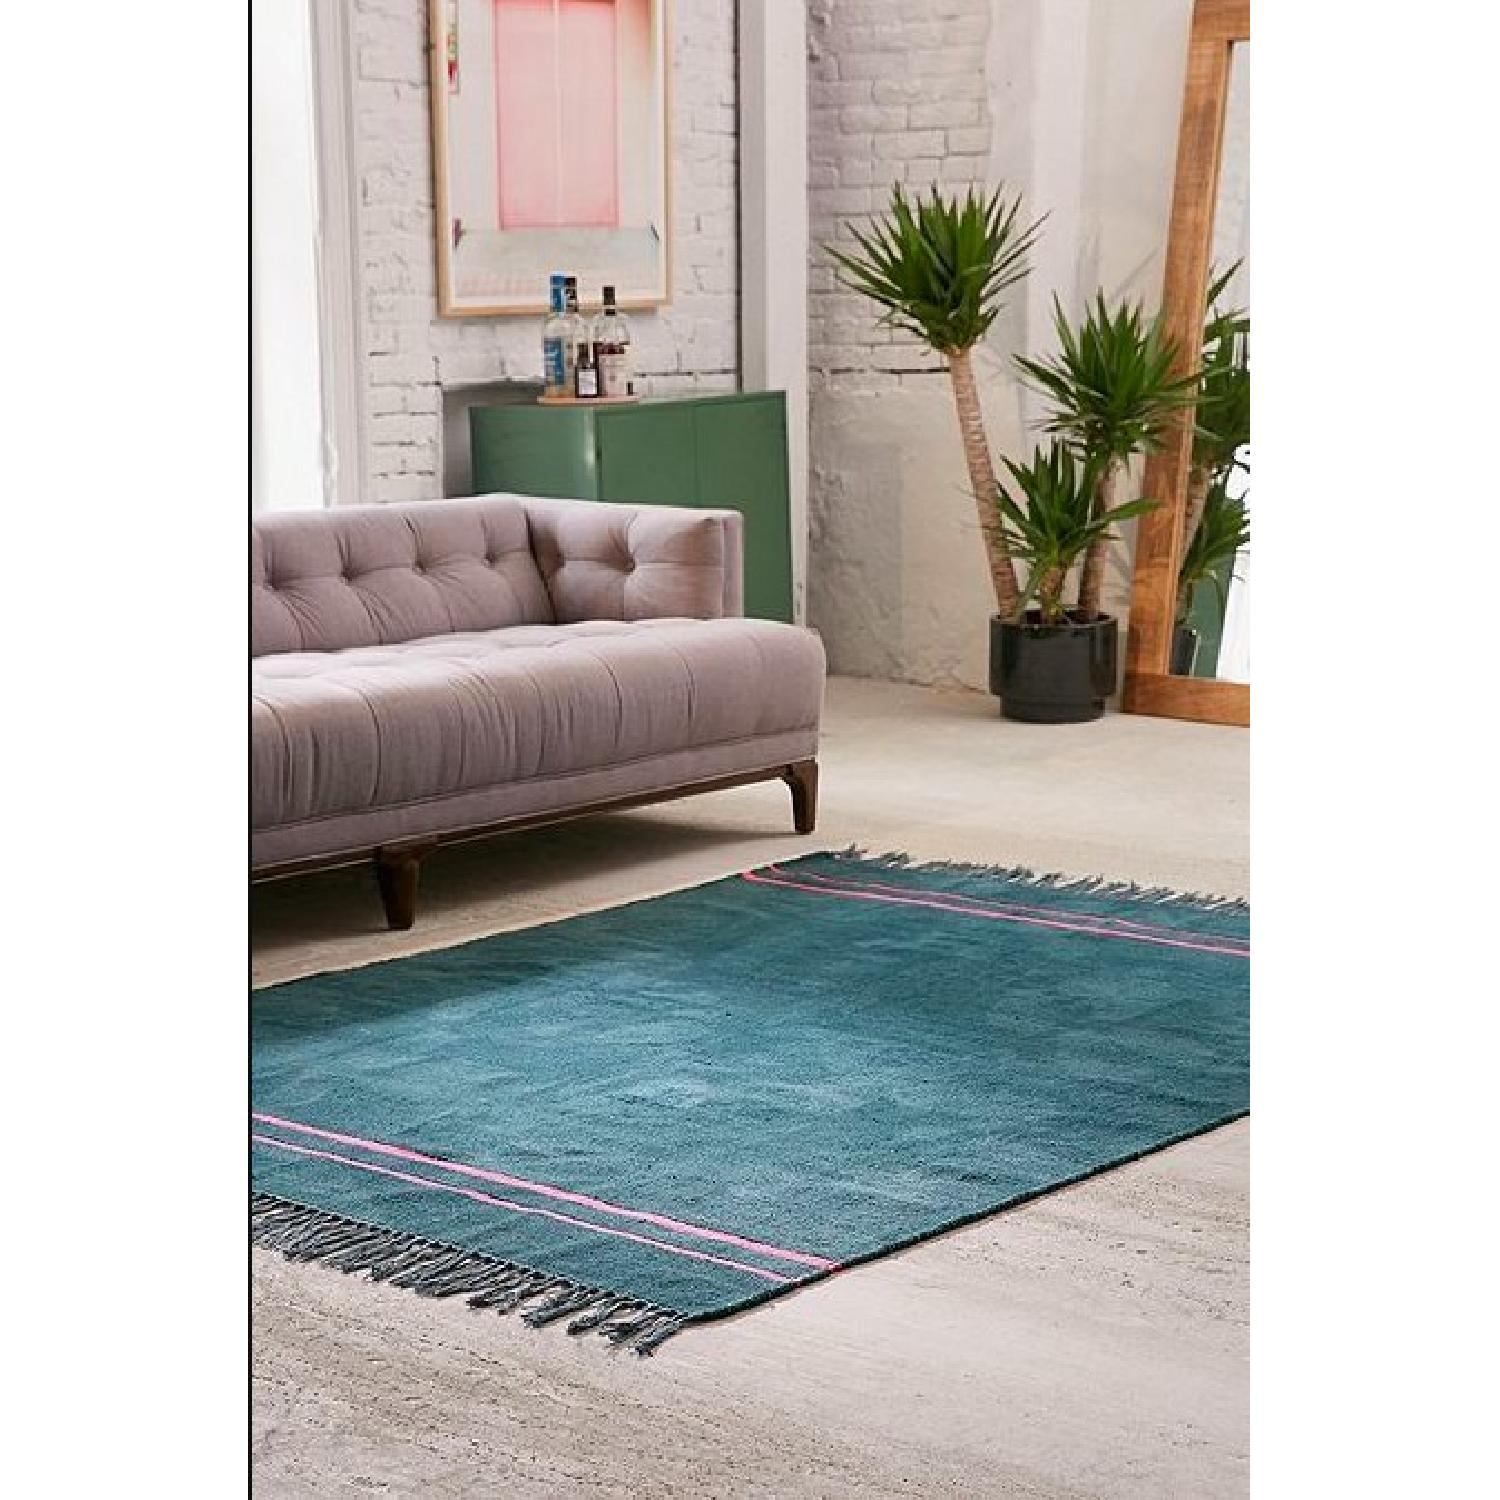 Urban Outfitters Luna Green Chenille Stripe Rug - image-2